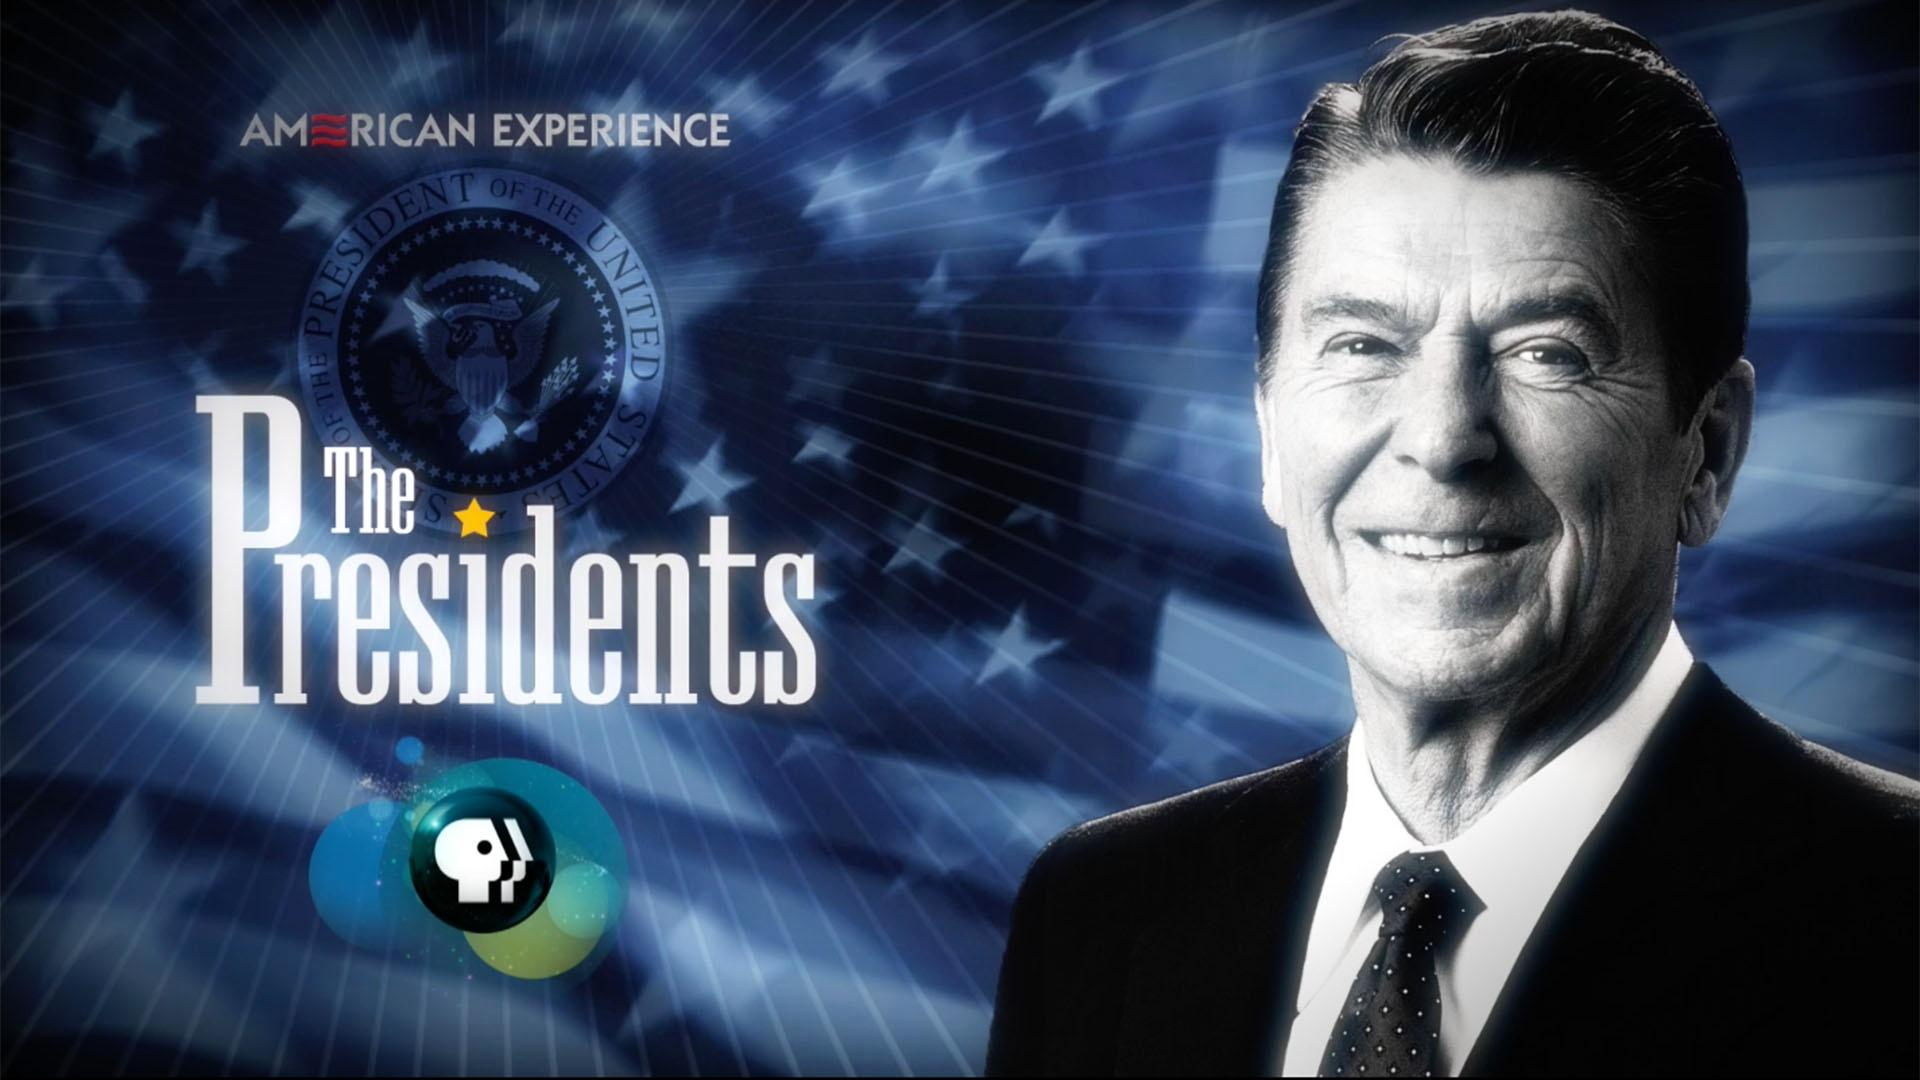 american experience Buy american experience: read 30 movies & tv reviews - amazoncom.